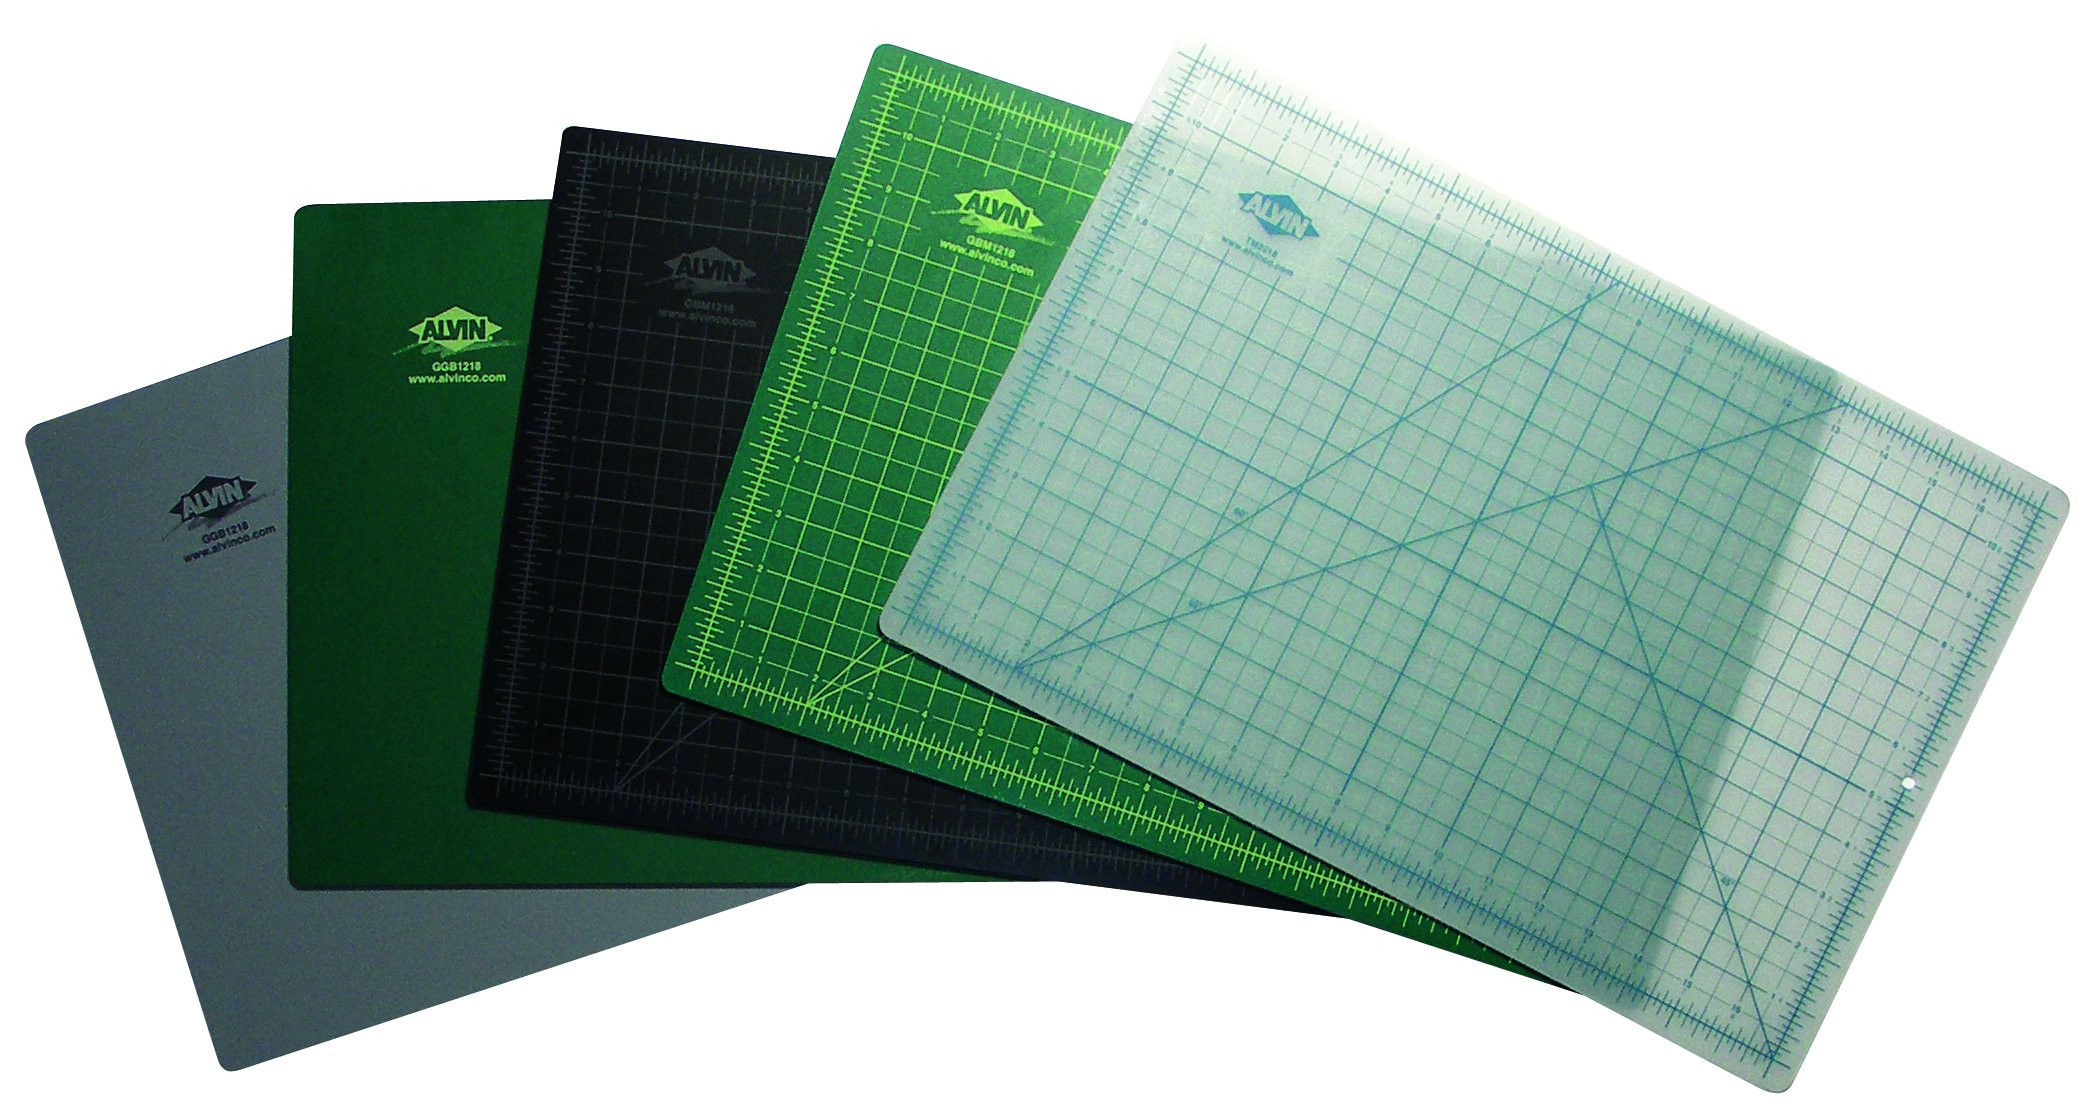 Alvin GBM3042 GBM Series Green/Black Professional Self-Healing Cutting Mat 30 inches x 42 inches by Alvin